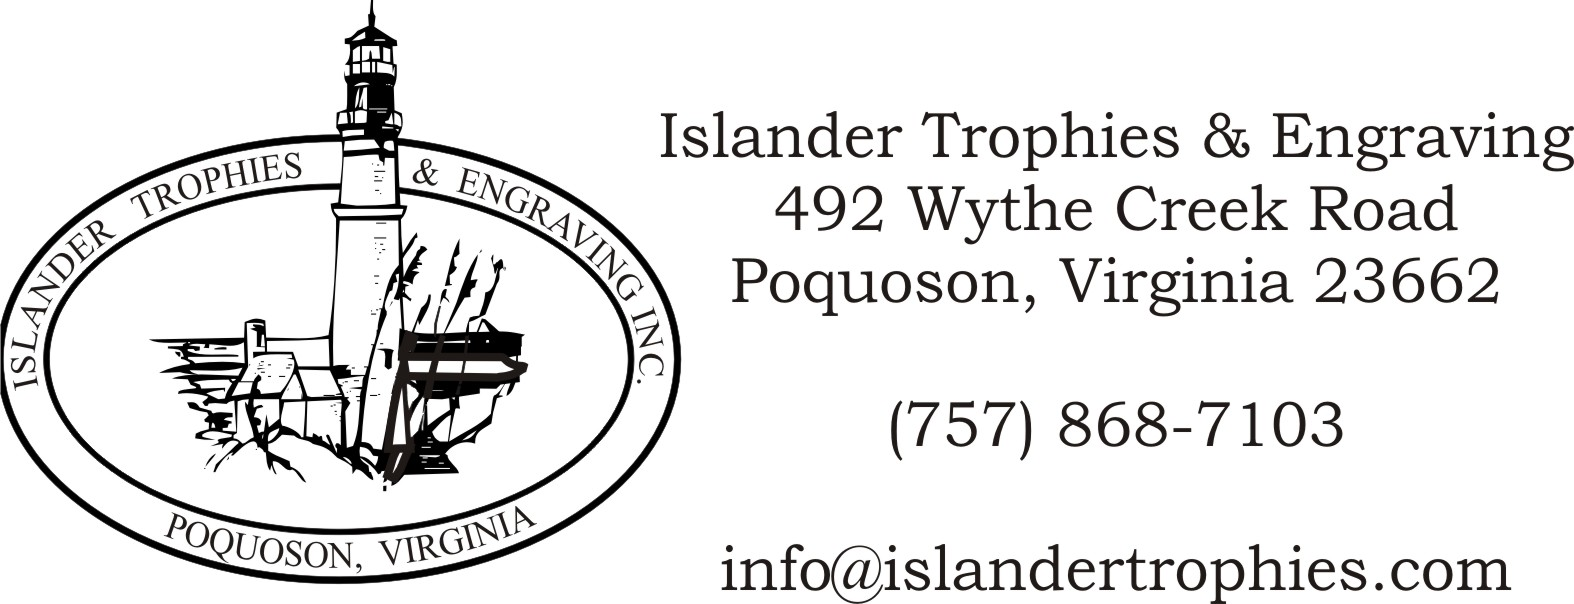 Islander Trophies & Engraving